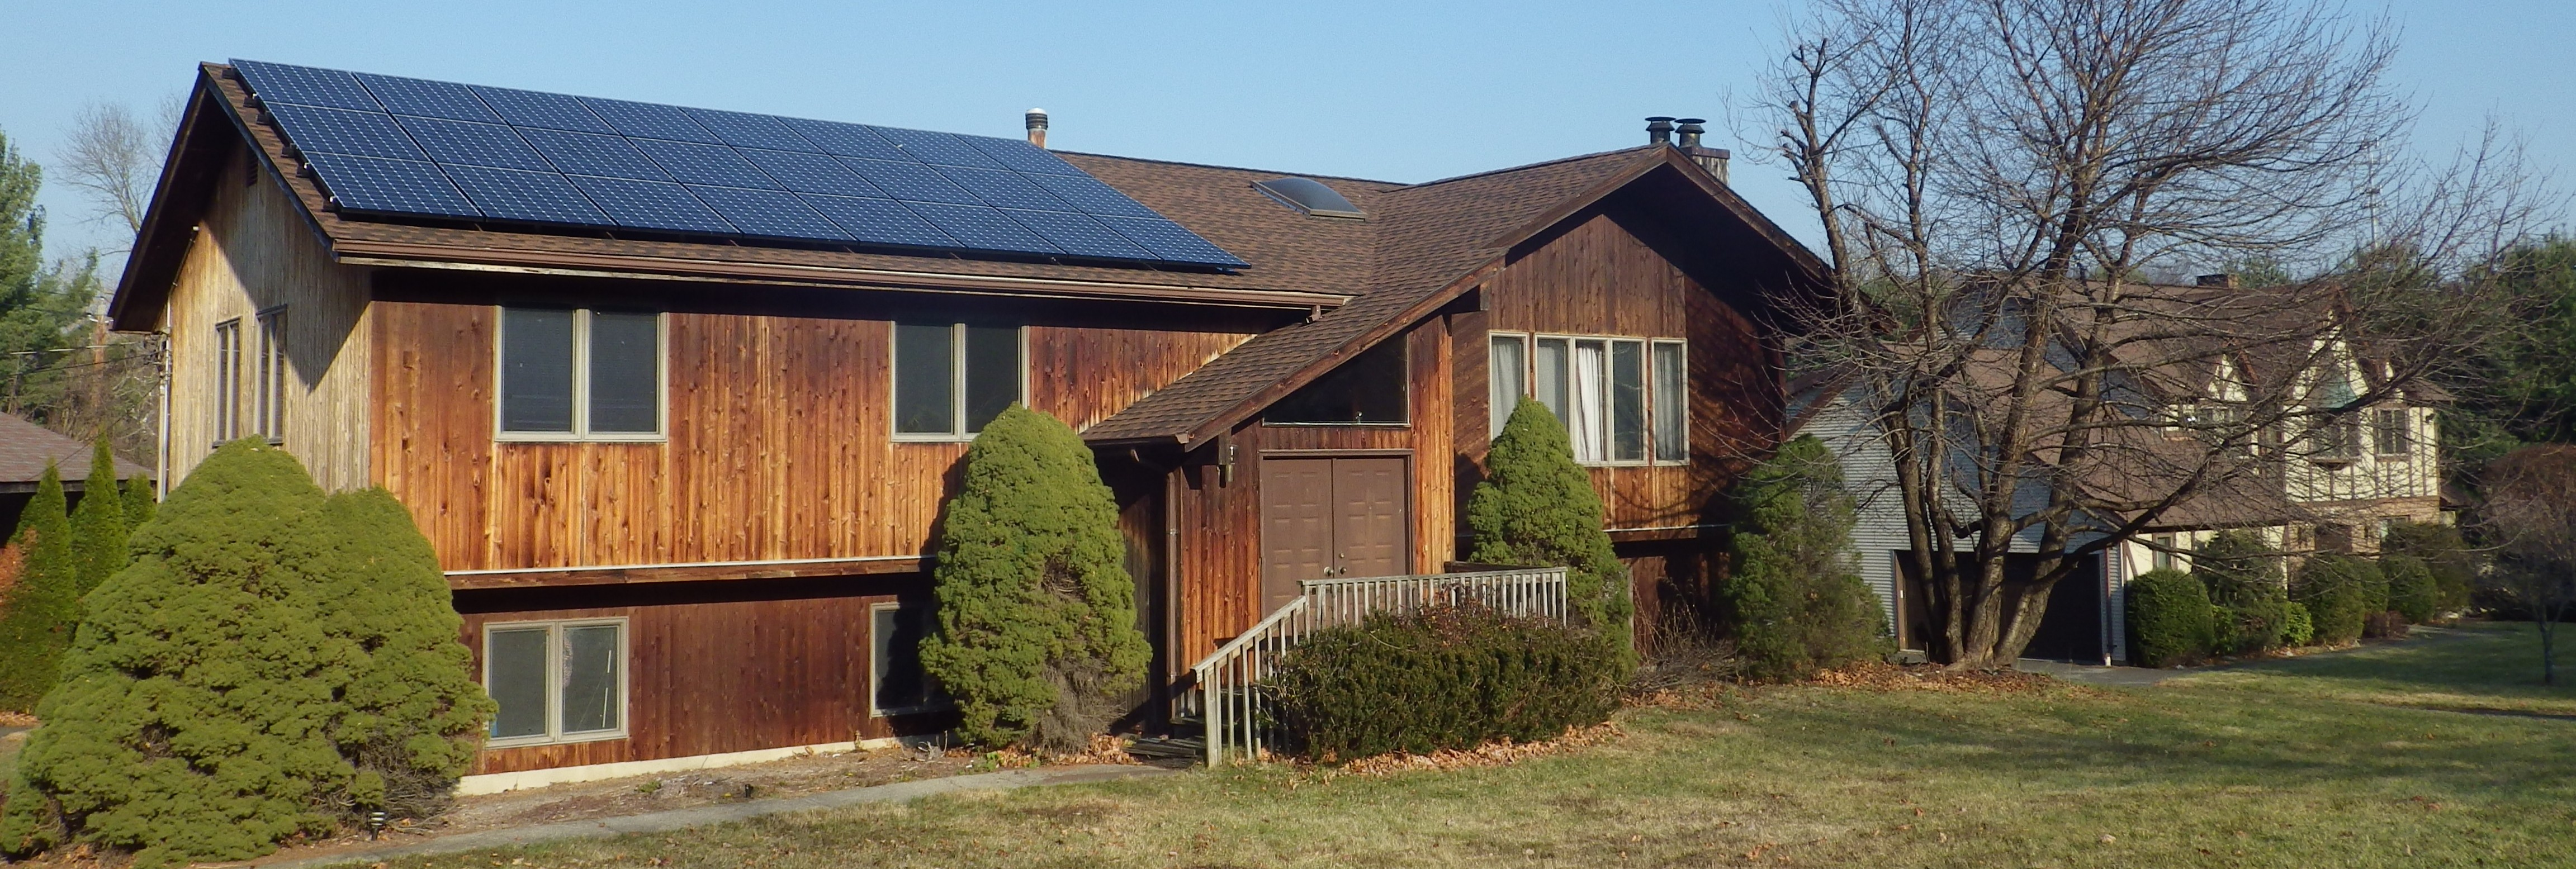 Top Ways To Save On Electric Bills This Spring & Summer